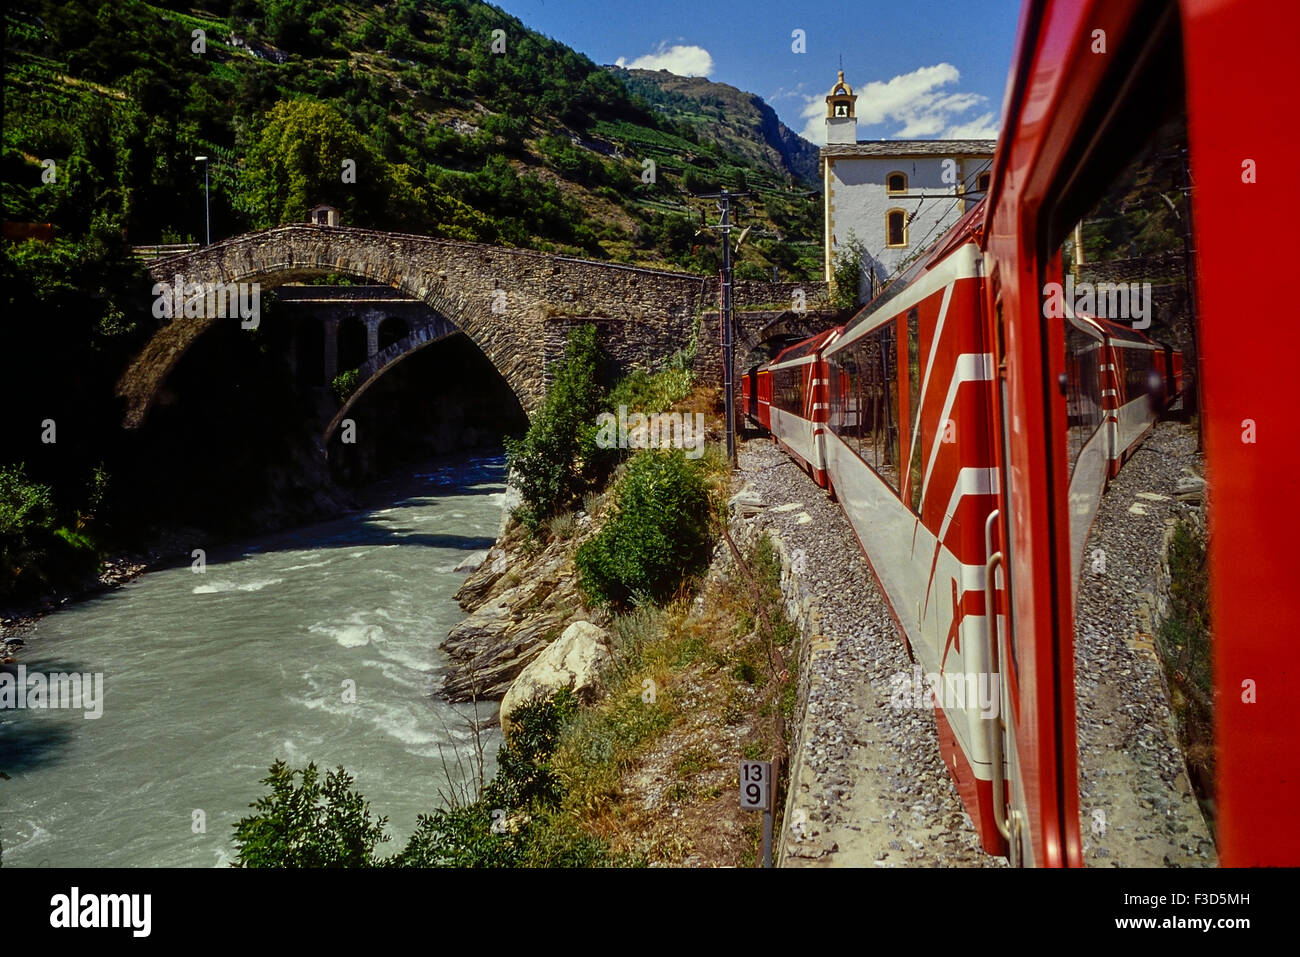 Glacier express railway passing Ritibrücke in Neubrück (Stalden), Switzerland. - Stock Image